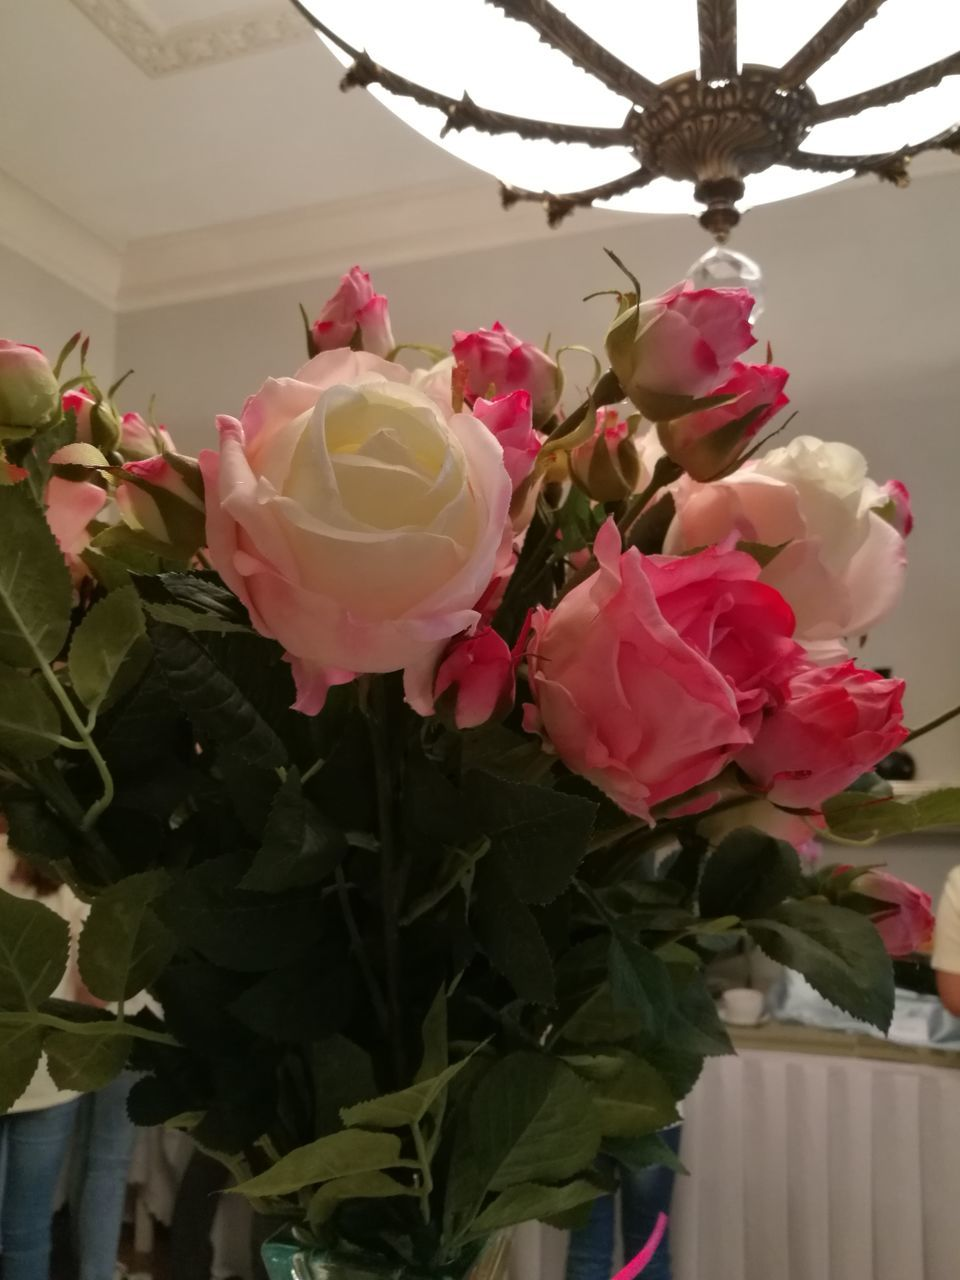 flower, petal, beauty in nature, rose - flower, nature, pink color, fragility, no people, flower head, growth, freshness, close-up, leaf, plant, blooming, day, indoors